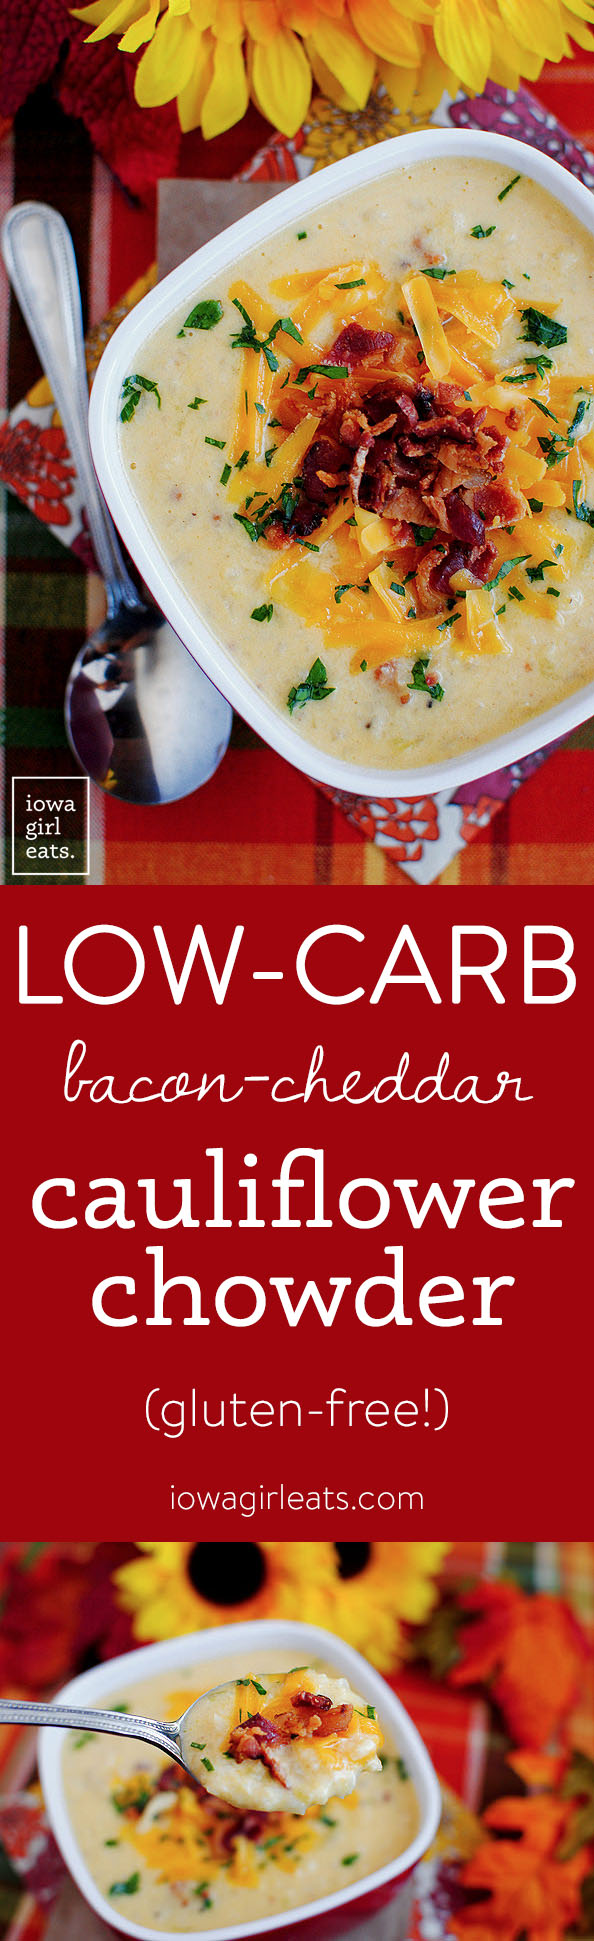 Gluten-free Bacon-Cheddar Cauliflower Chowder is thick and creamy, and a low-carb alternative to Baked Potato Soup! | iowagirleats.com